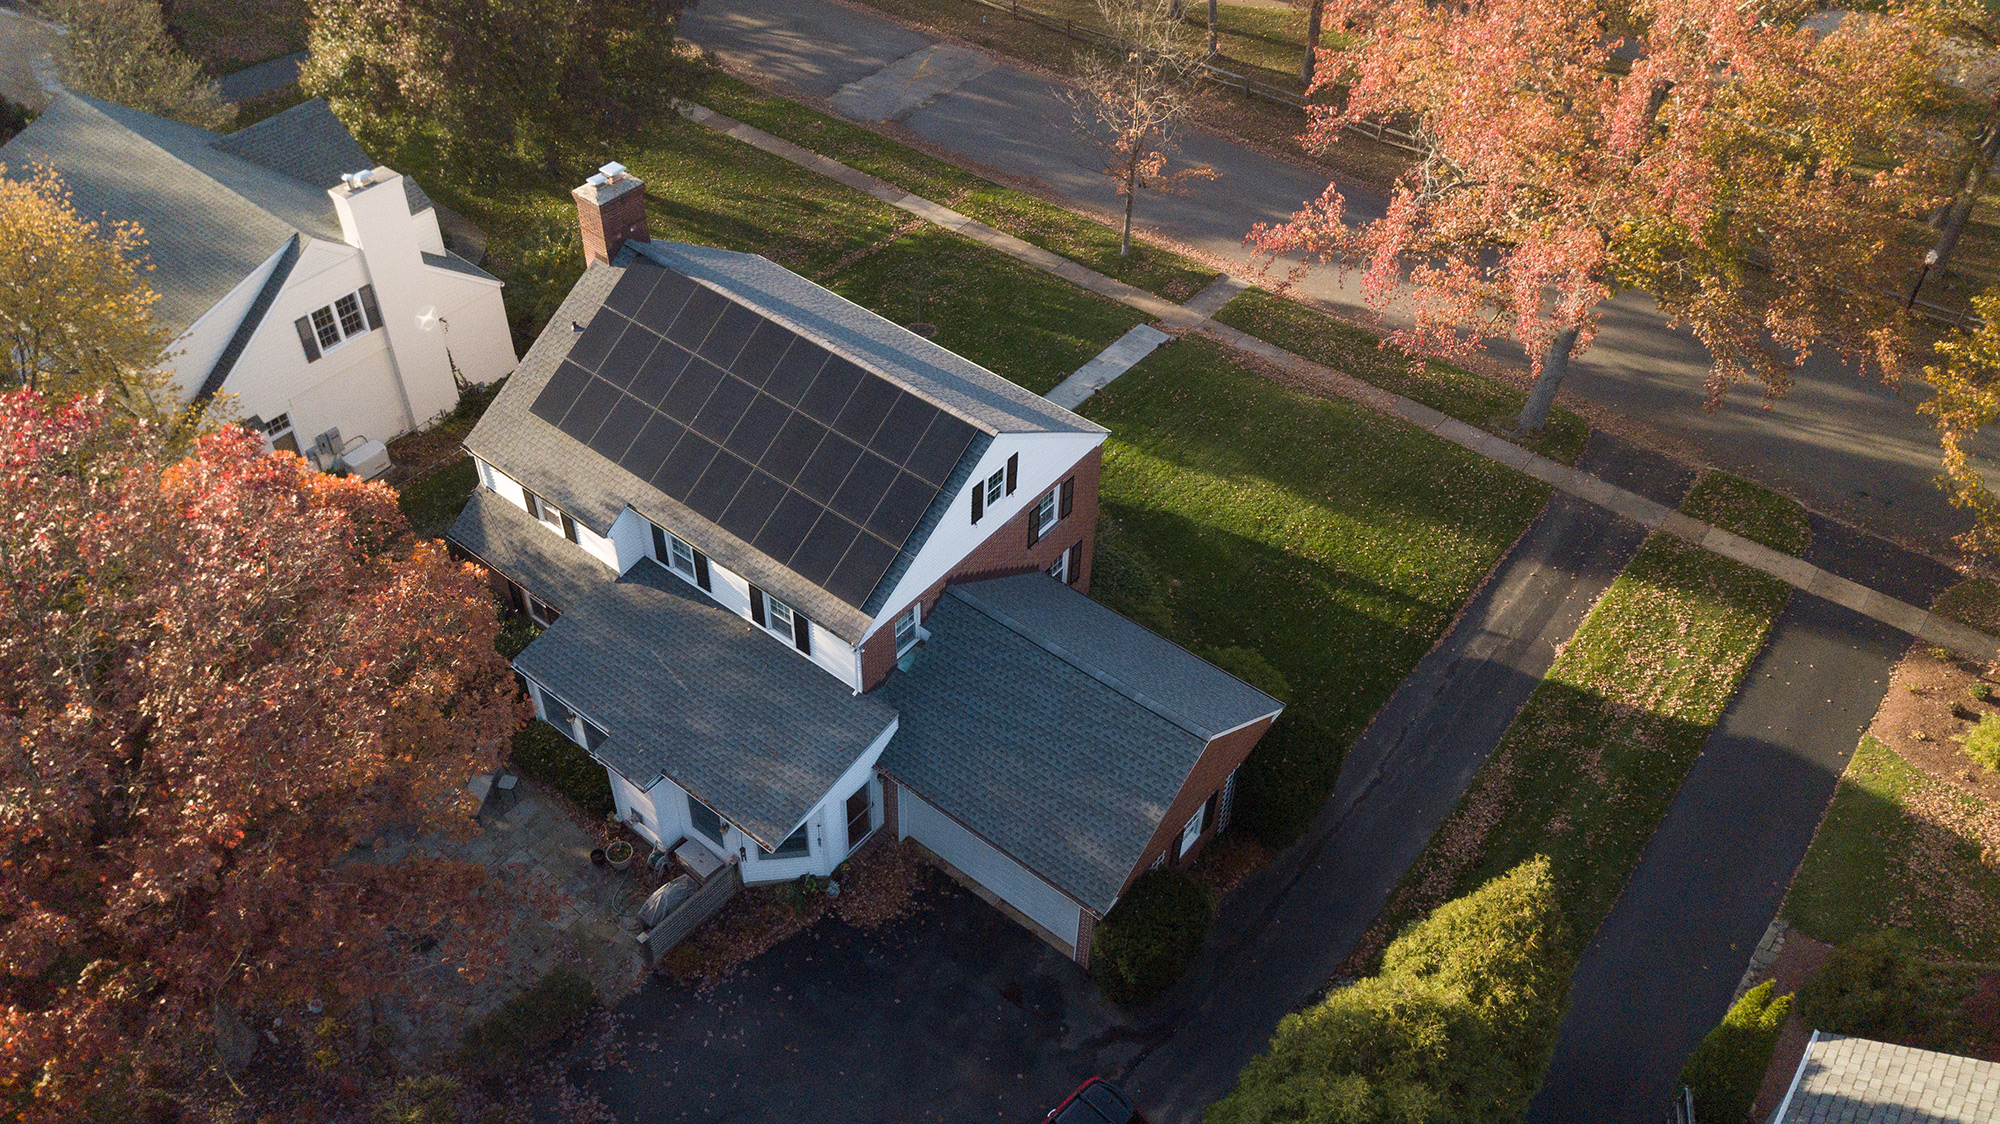 View from above of the TerraSol solar system installed on the rooftop of Dean F.'s New Castle County home.